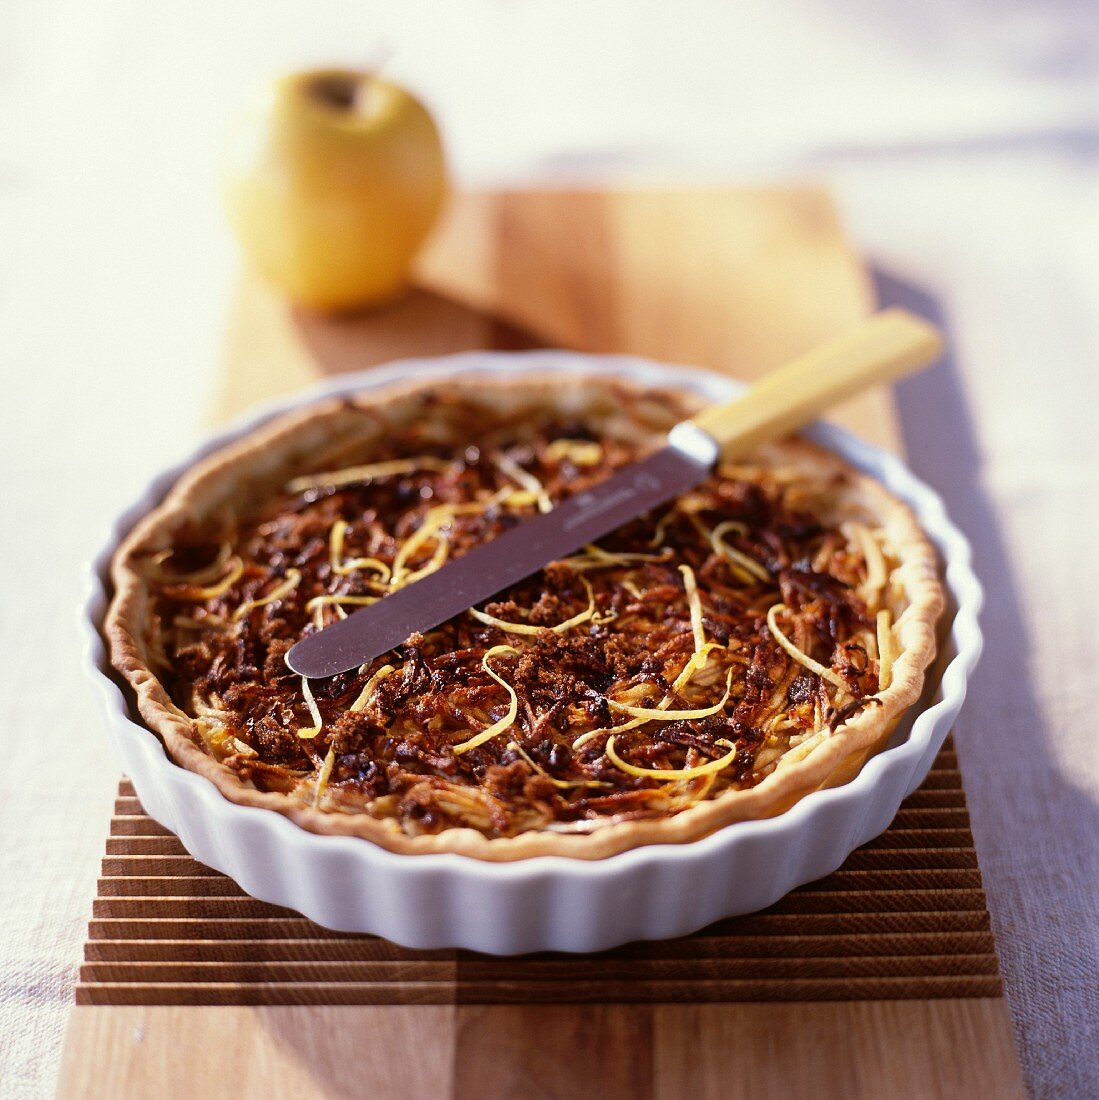 Apple tart with grated apples